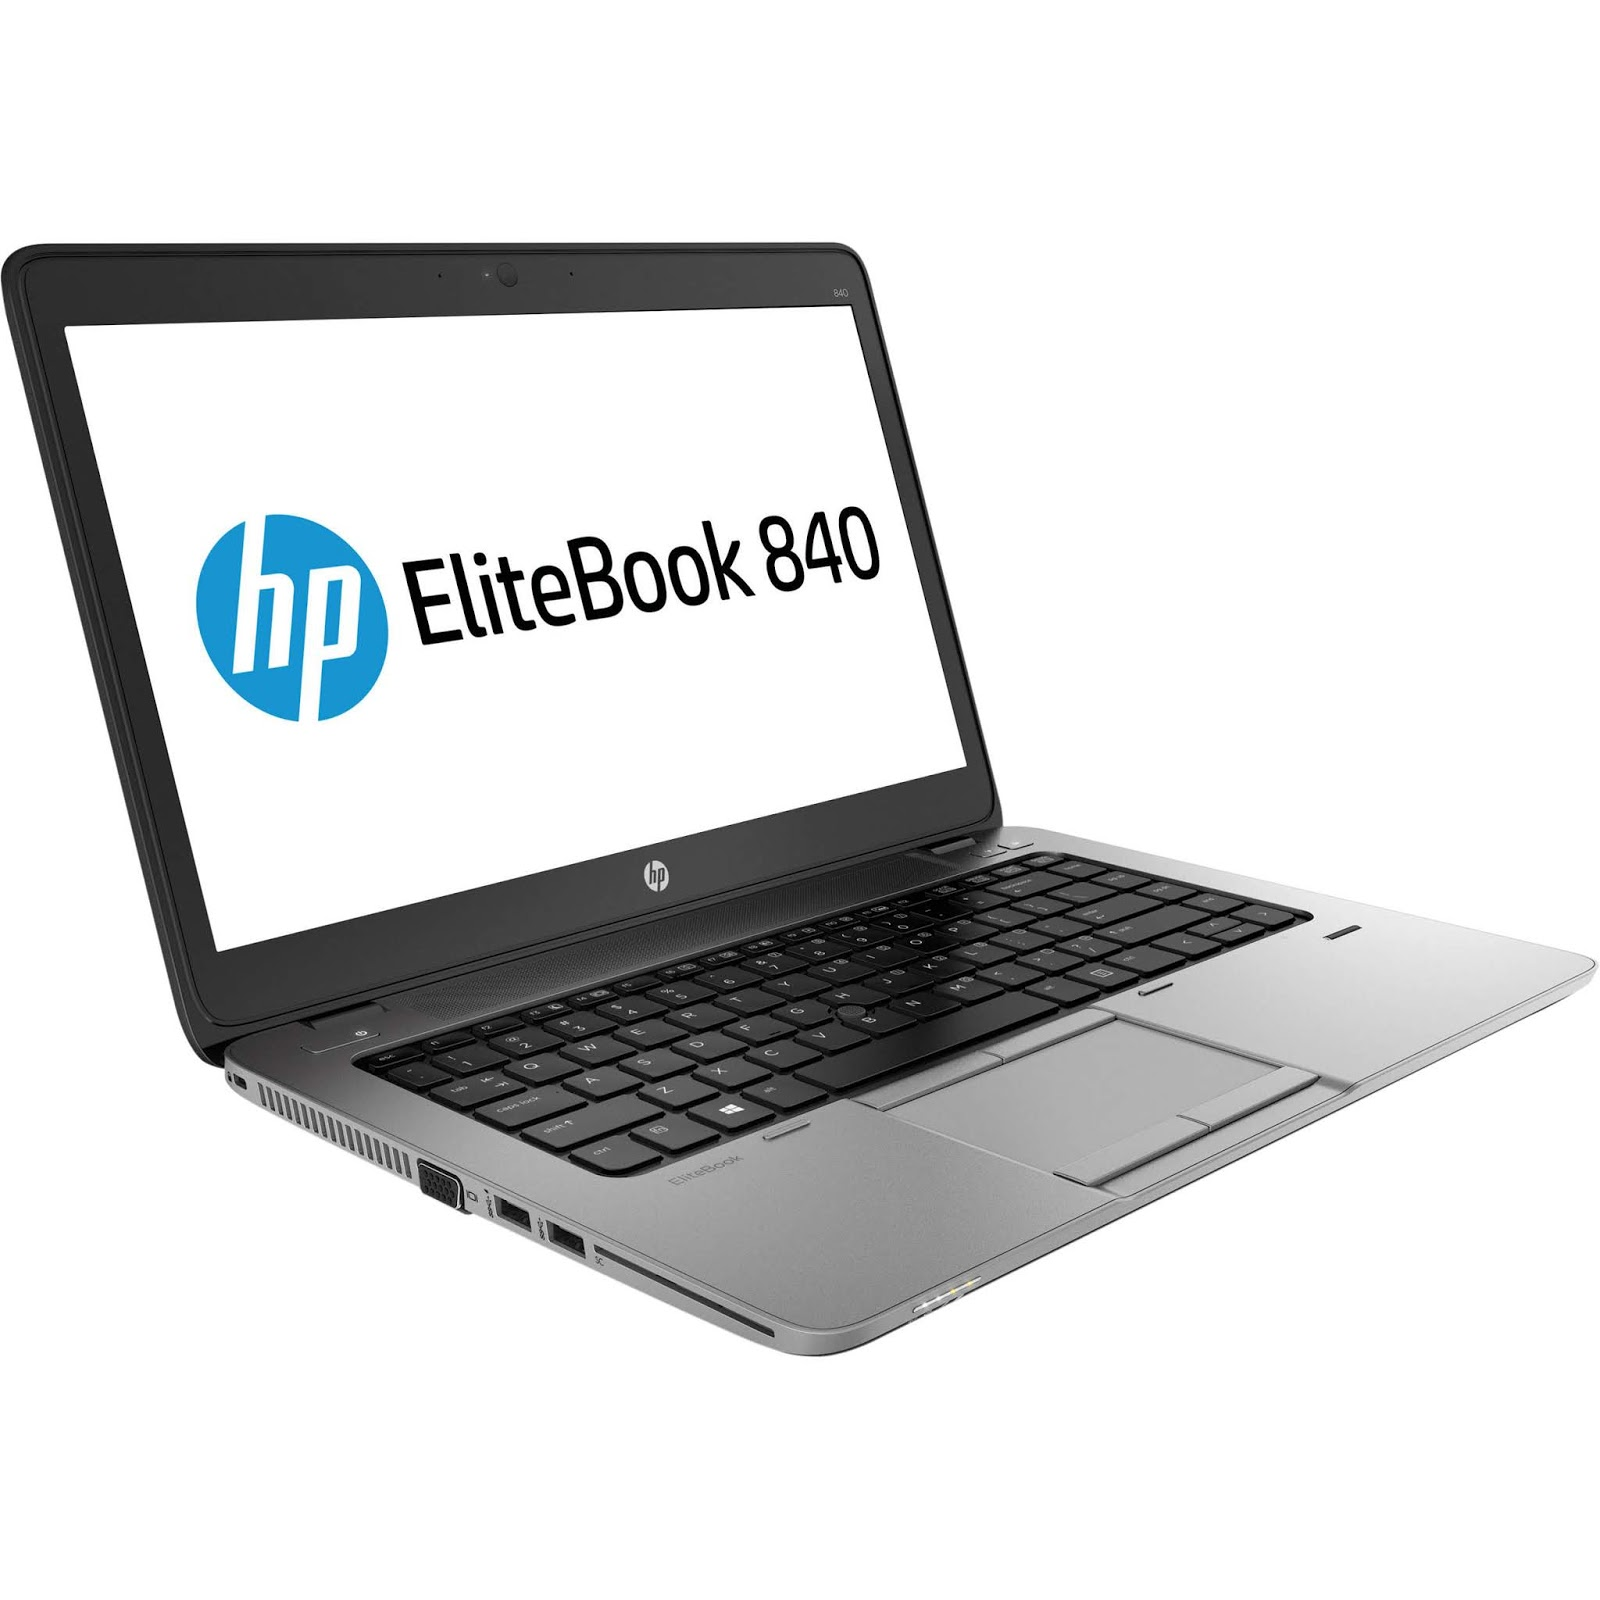 HP ELITEBOOK 840 G1 BROADCOM BLUETOOTH WINDOWS 8.1 DRIVER DOWNLOAD